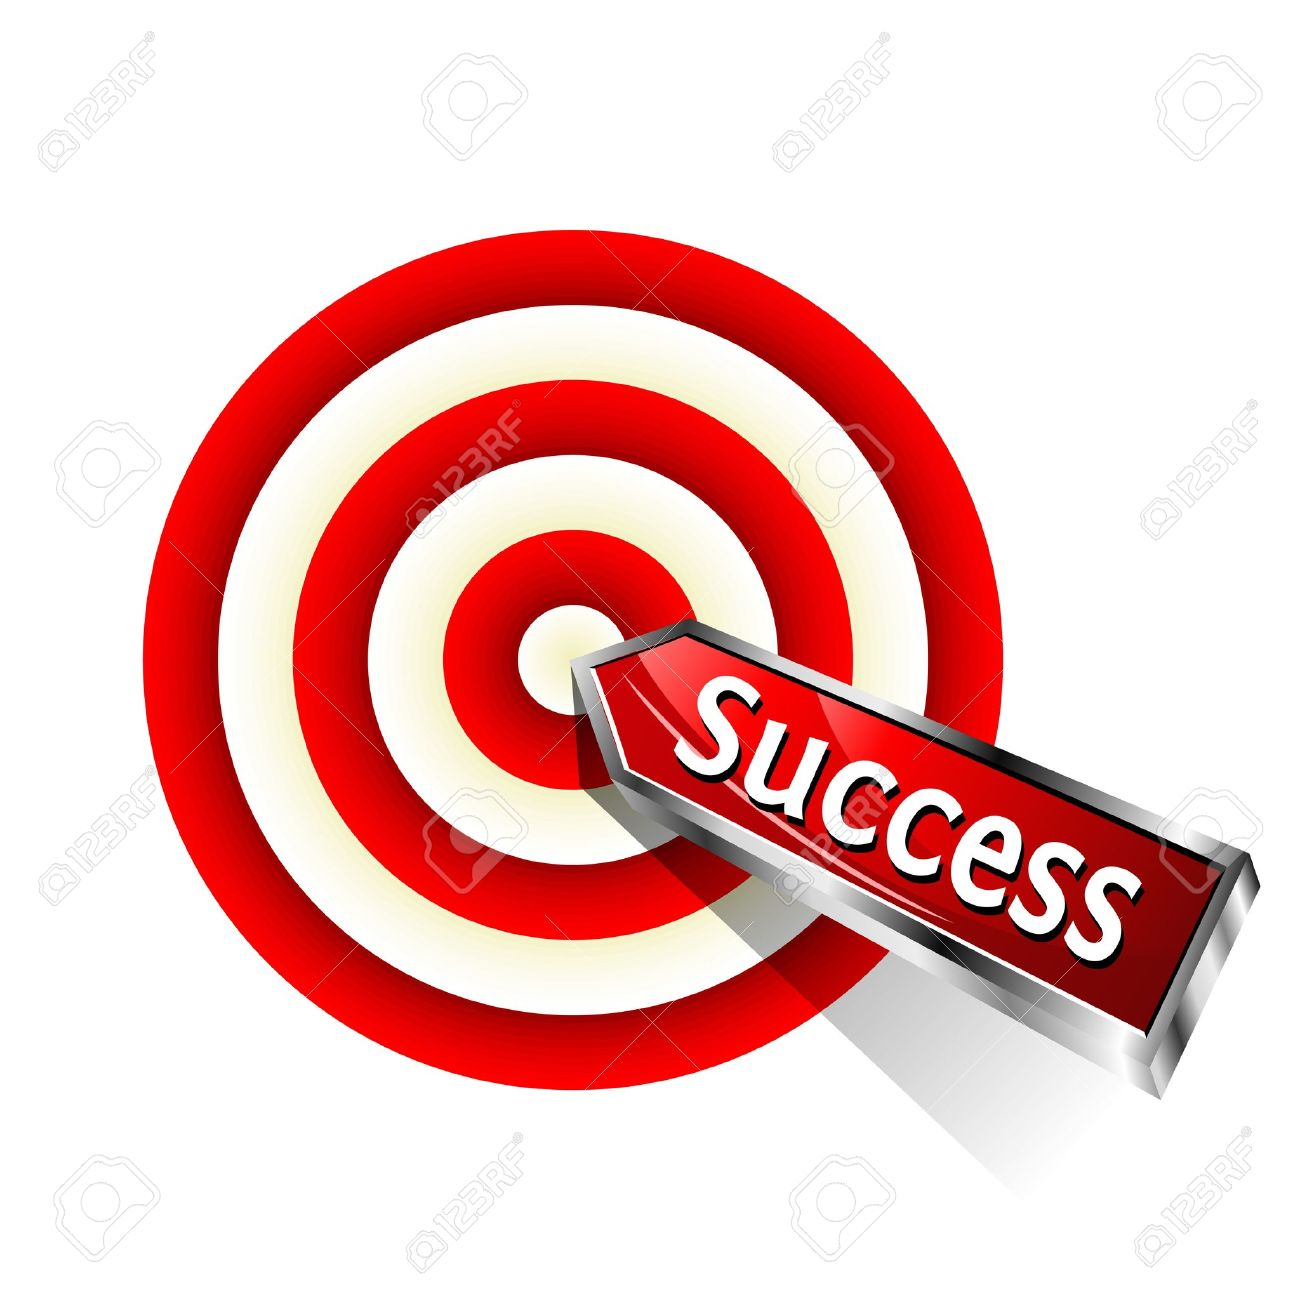 5 years sucess clipart banner transparent Target success clipart jpg - Clipartix banner transparent